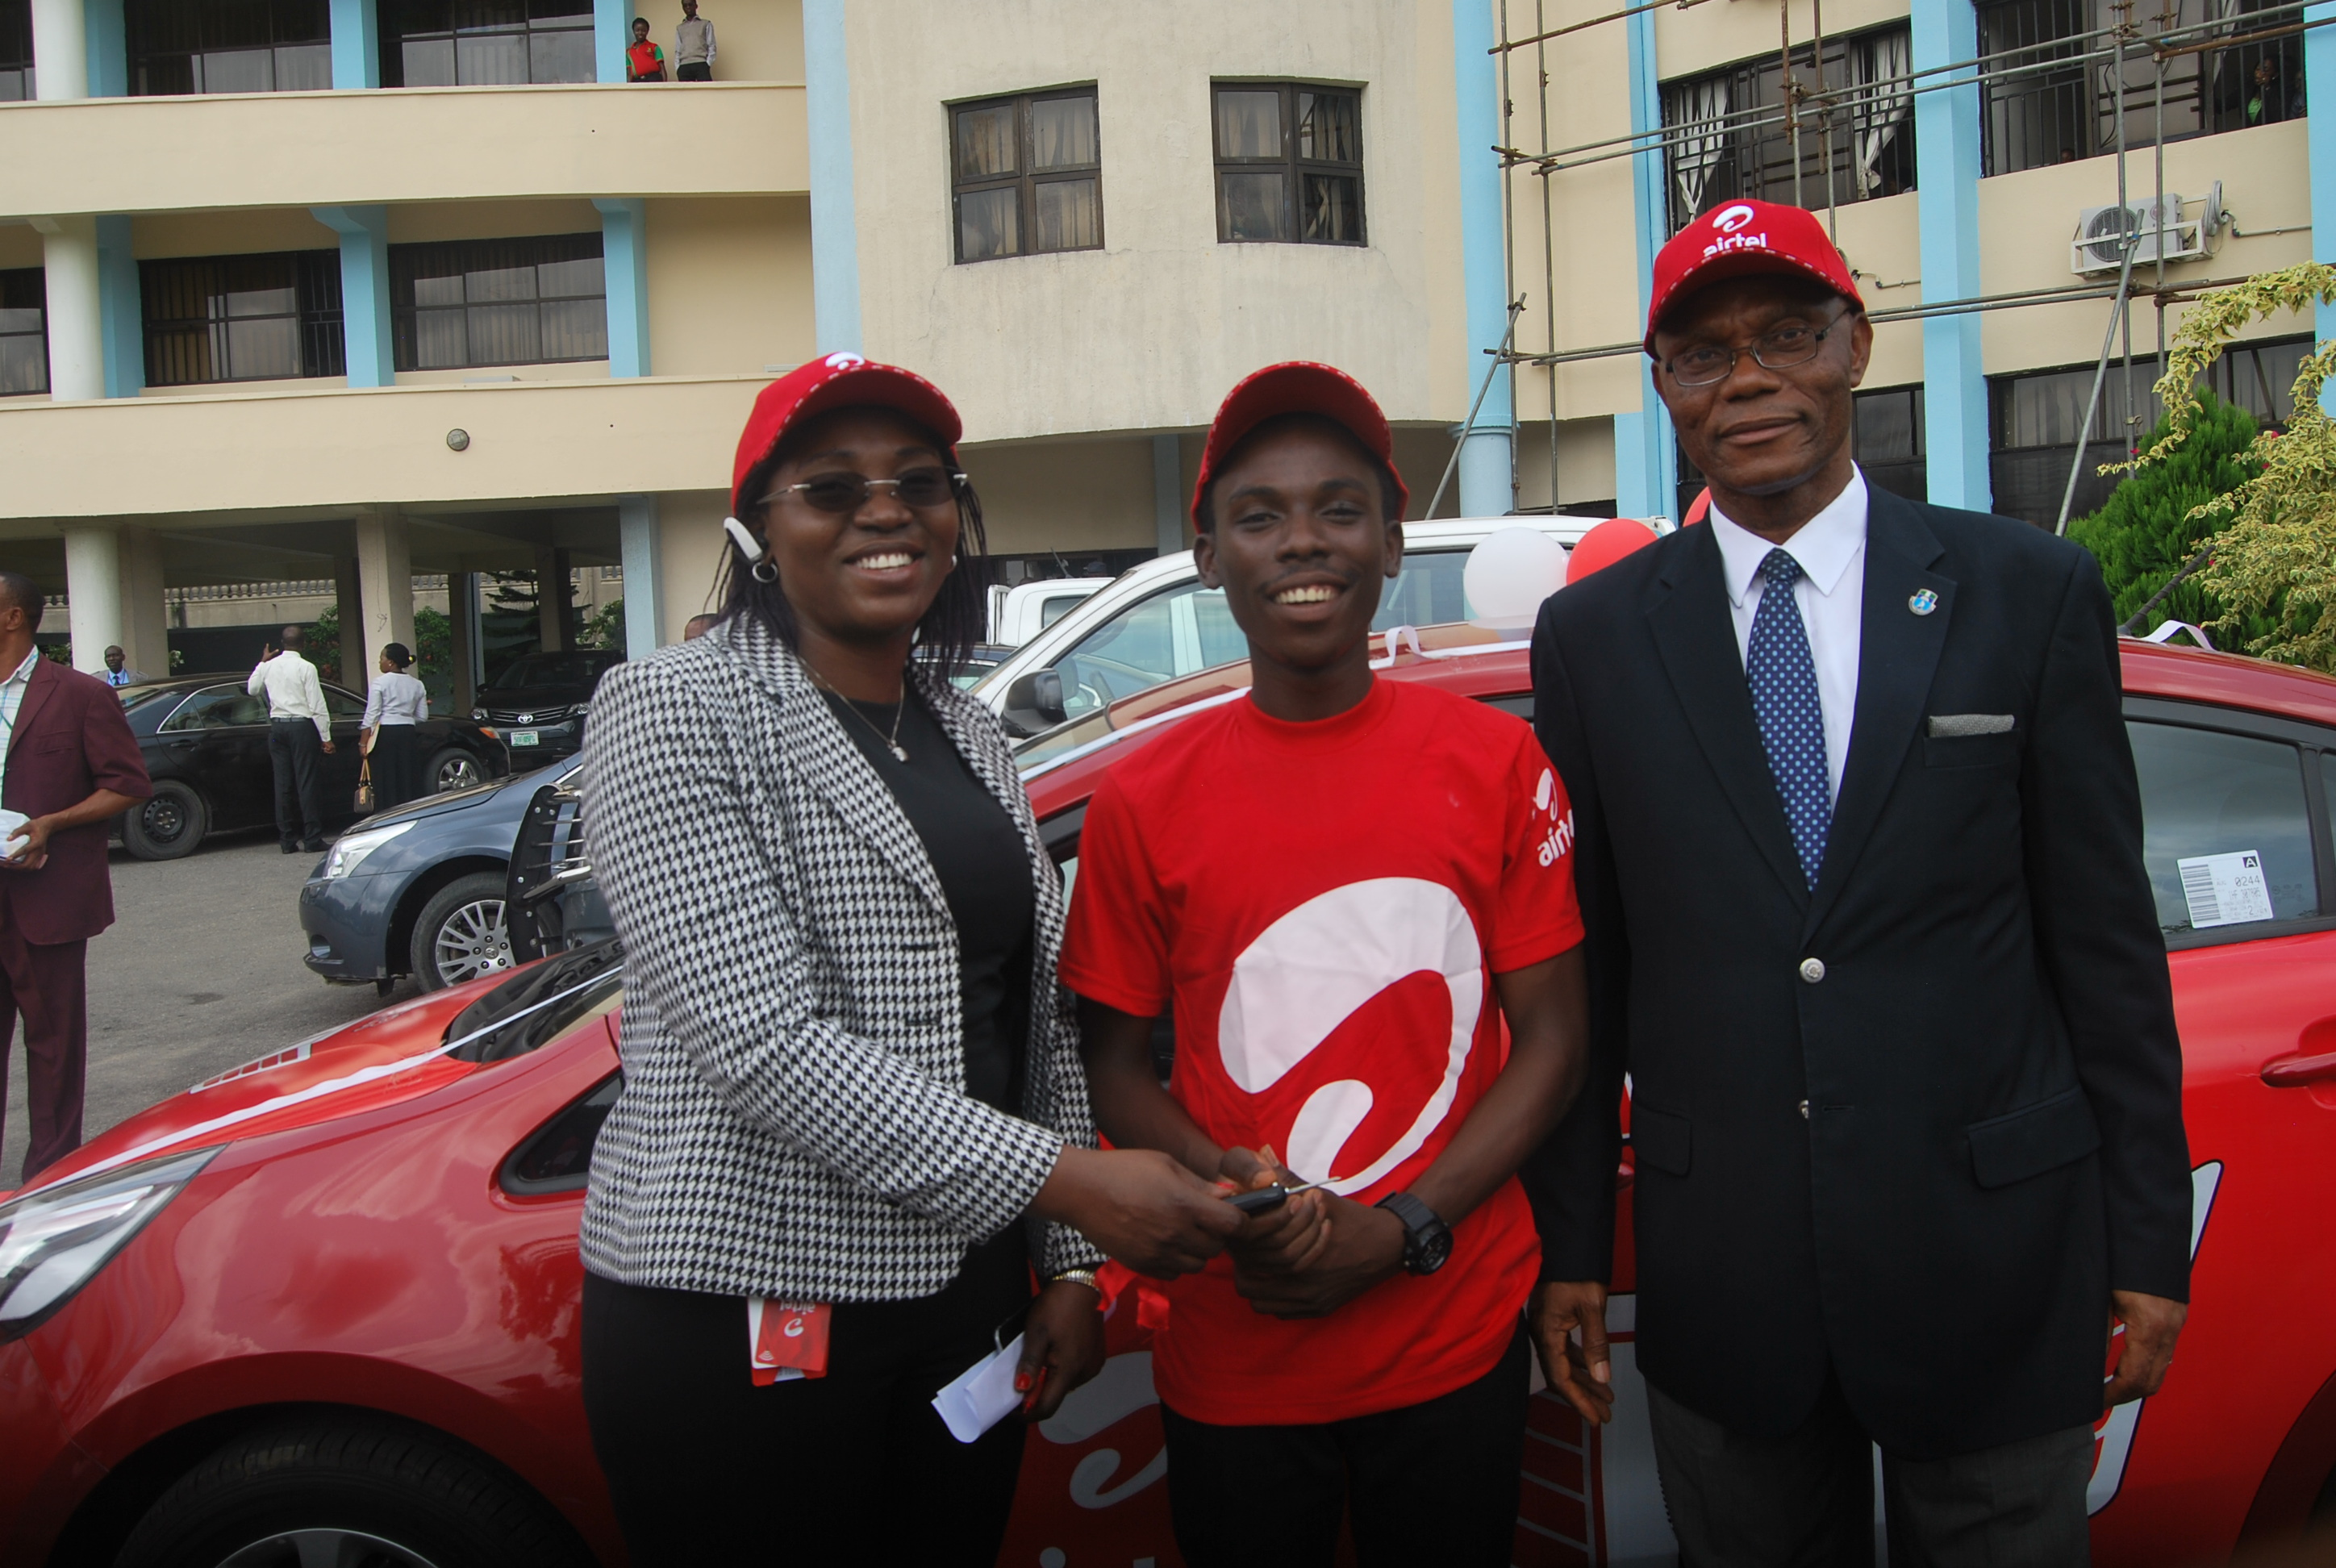 Regional Operations Director (South) Airtel Nigeria, Veronica Onoja presenting the keys of a brand new Kia Picanto to winner of Airtel One Mic Competition and Undergraduate of University of Port Harcourt, Olumuyiwa Jeffery Wenegha aka ACE TUNES while the Vice Chancellor of the institution, Joseph Atubokiki Ajienka, looks on. The event was held recently at the school premises.